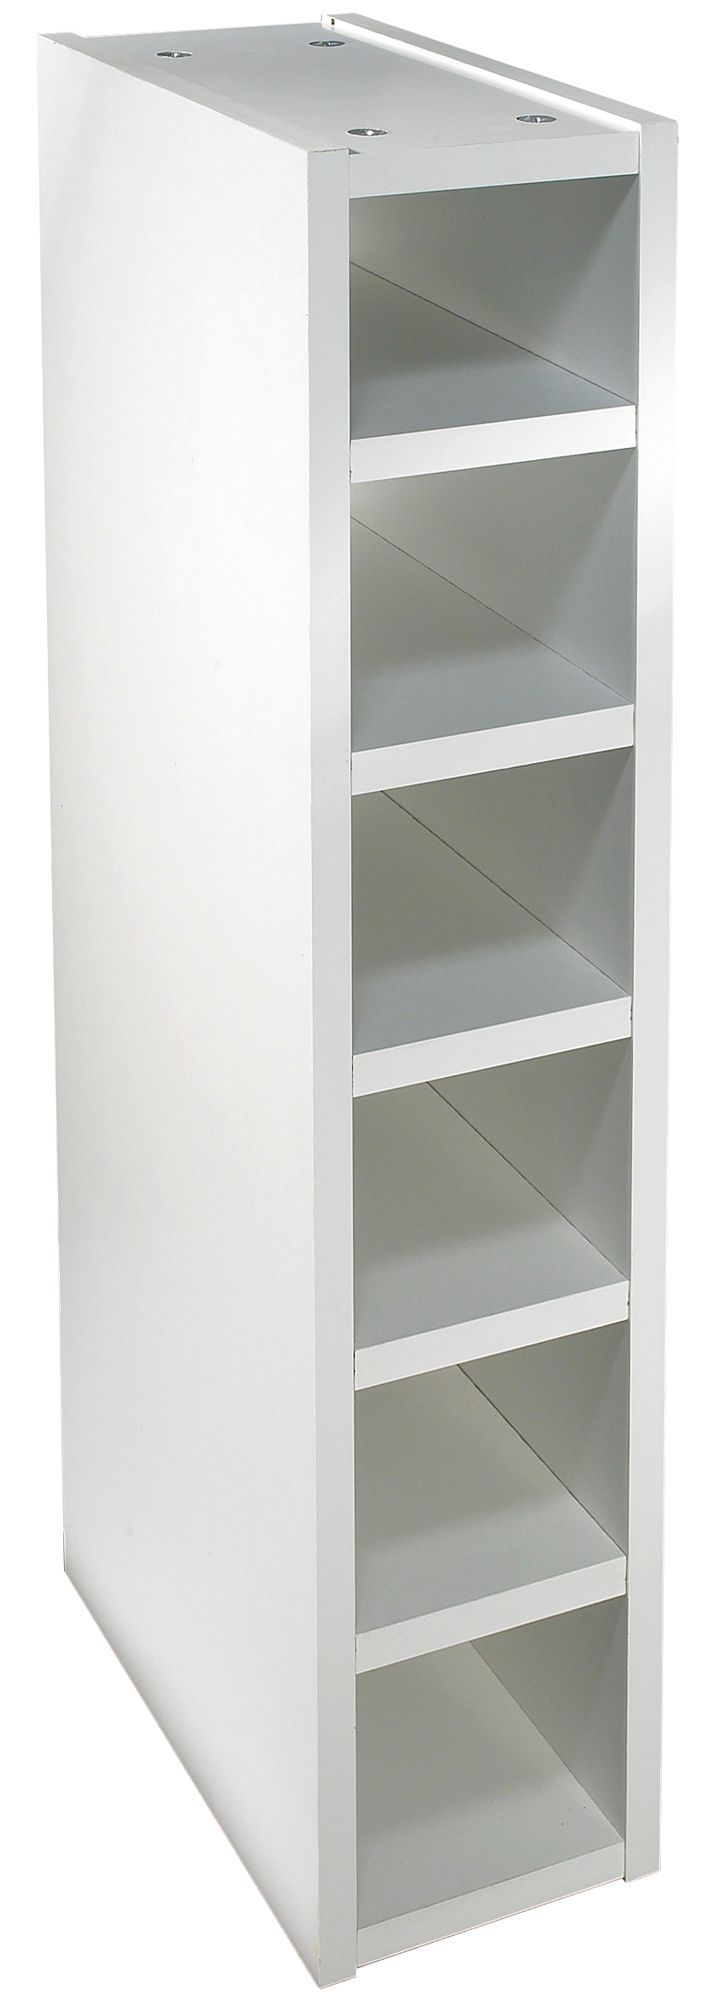 it kitchens white classic style wine rack cabinet w150mm departments diy